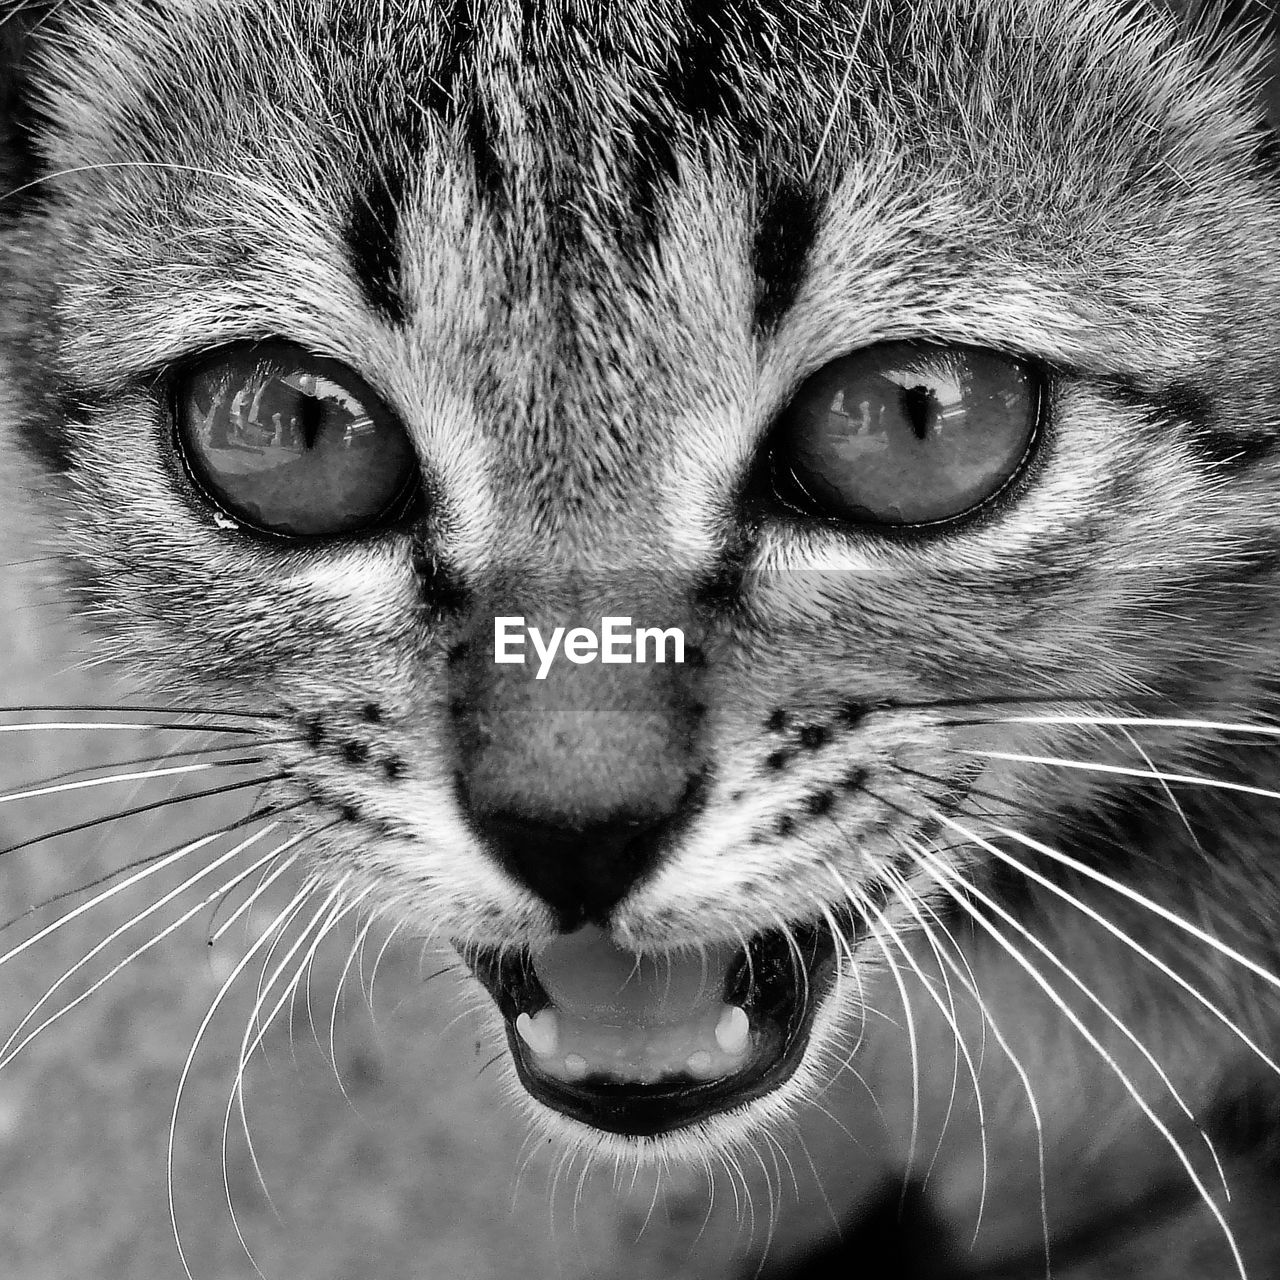 cat, feline, animal themes, one animal, mammal, animal, whisker, domestic cat, close-up, domestic animals, pets, animal body part, domestic, aggression, anger, vertebrate, mouth open, no people, mouth, negative emotion, animal head, animal mouth, animal eye, snout, tabby